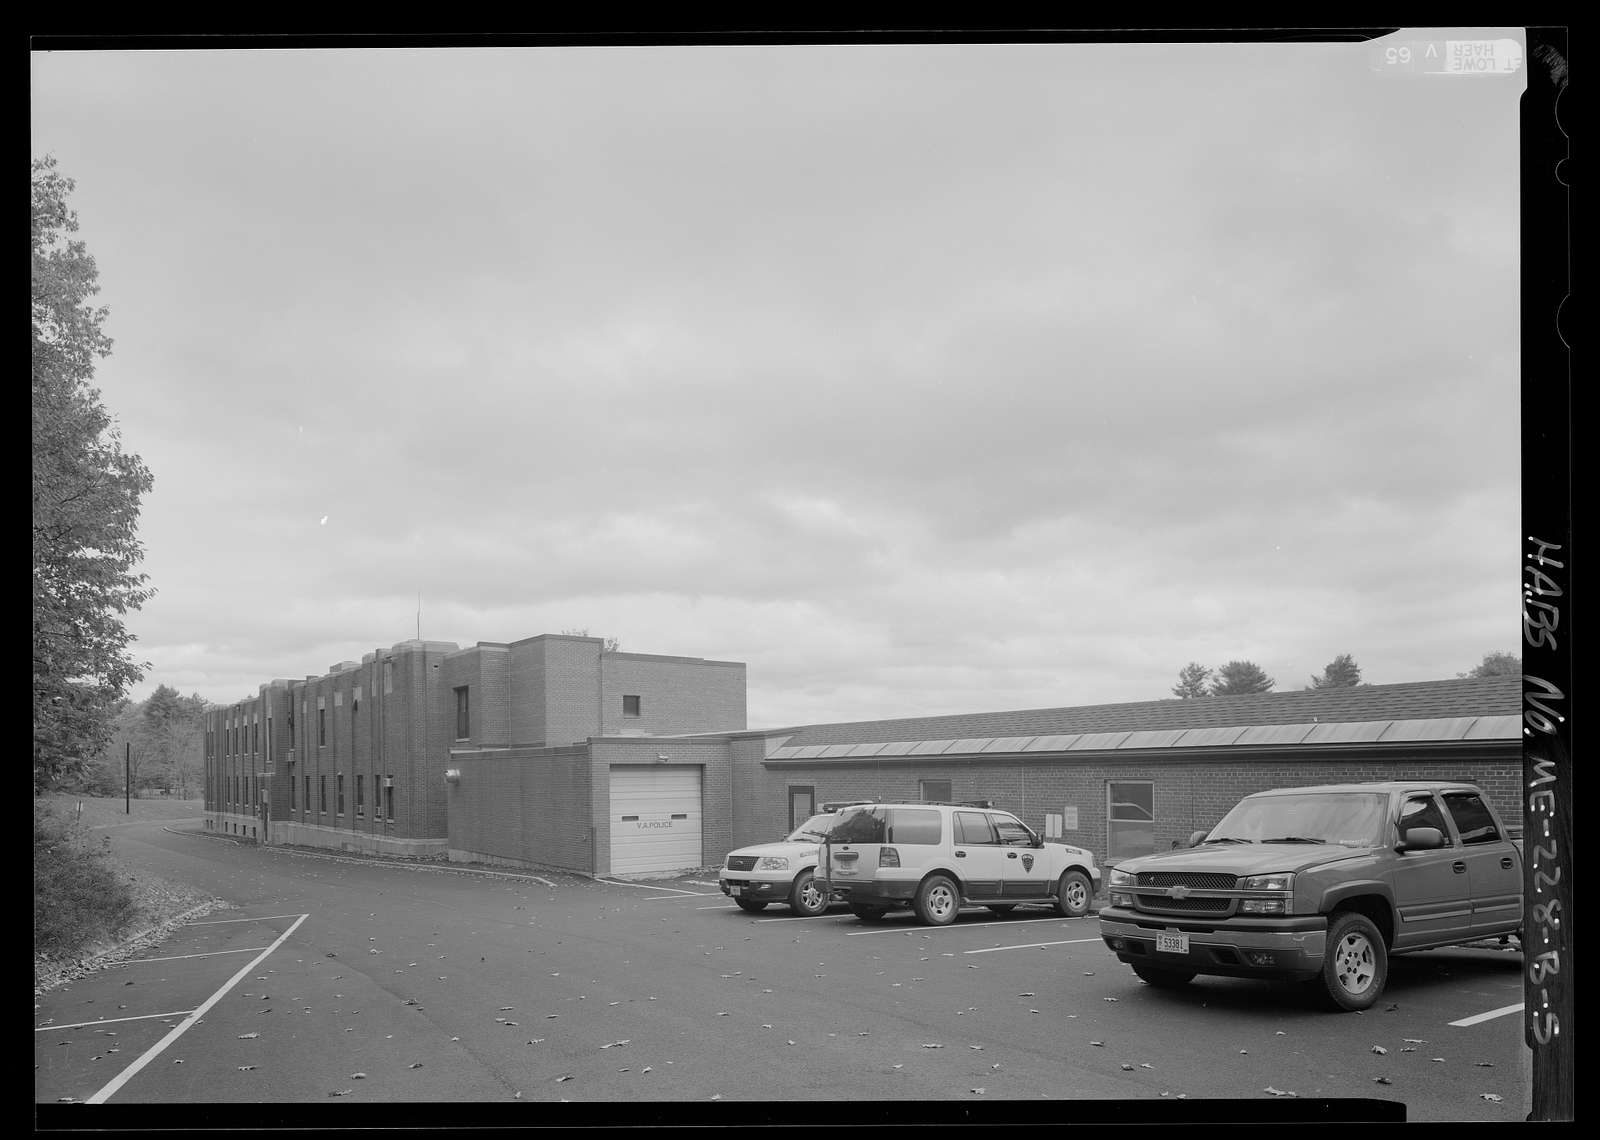 National Home for Disabled Volunteer Soldiers, Eastern Branch, Medical Administration, 1 VA Center, Augusta, Kennebec County, ME